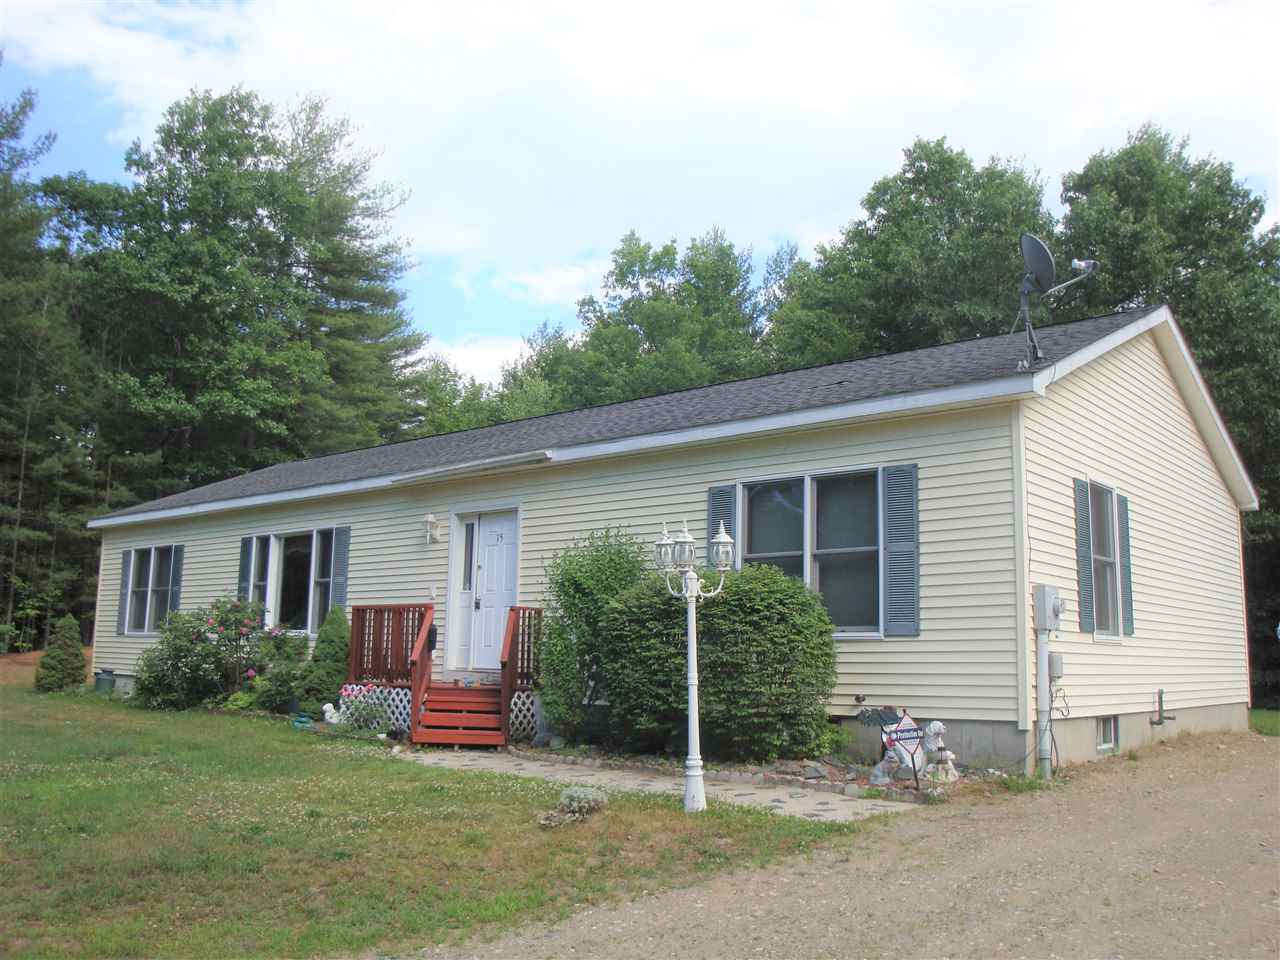 MLS 4702259: 15 Yeaw Road, Hinsdale NH